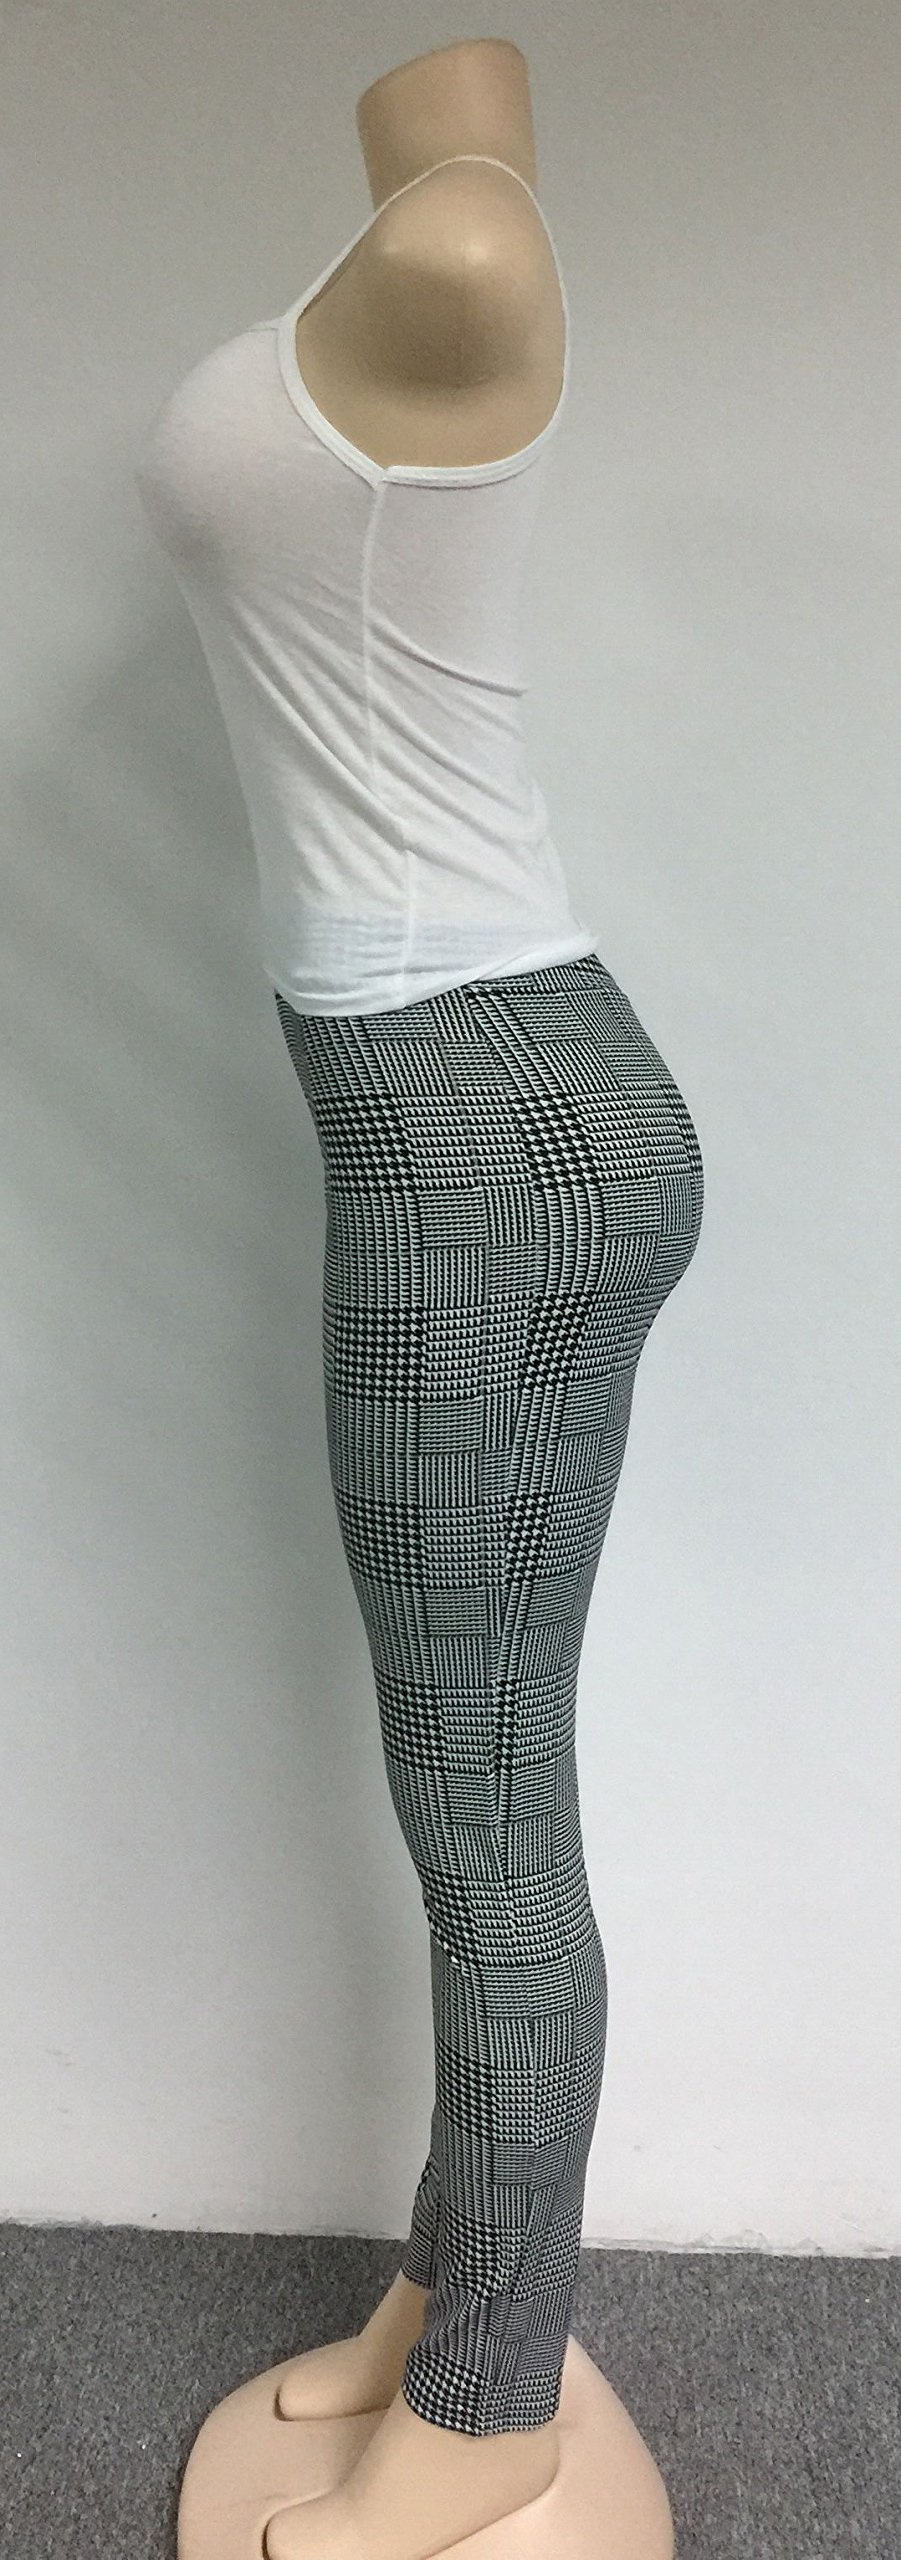 VERWIN Long Sleeve Plaid Tops and High Waist Skinny Pants Houndstooth Blazer Outfit 3 Sets XL by VERWIN (Image #9)